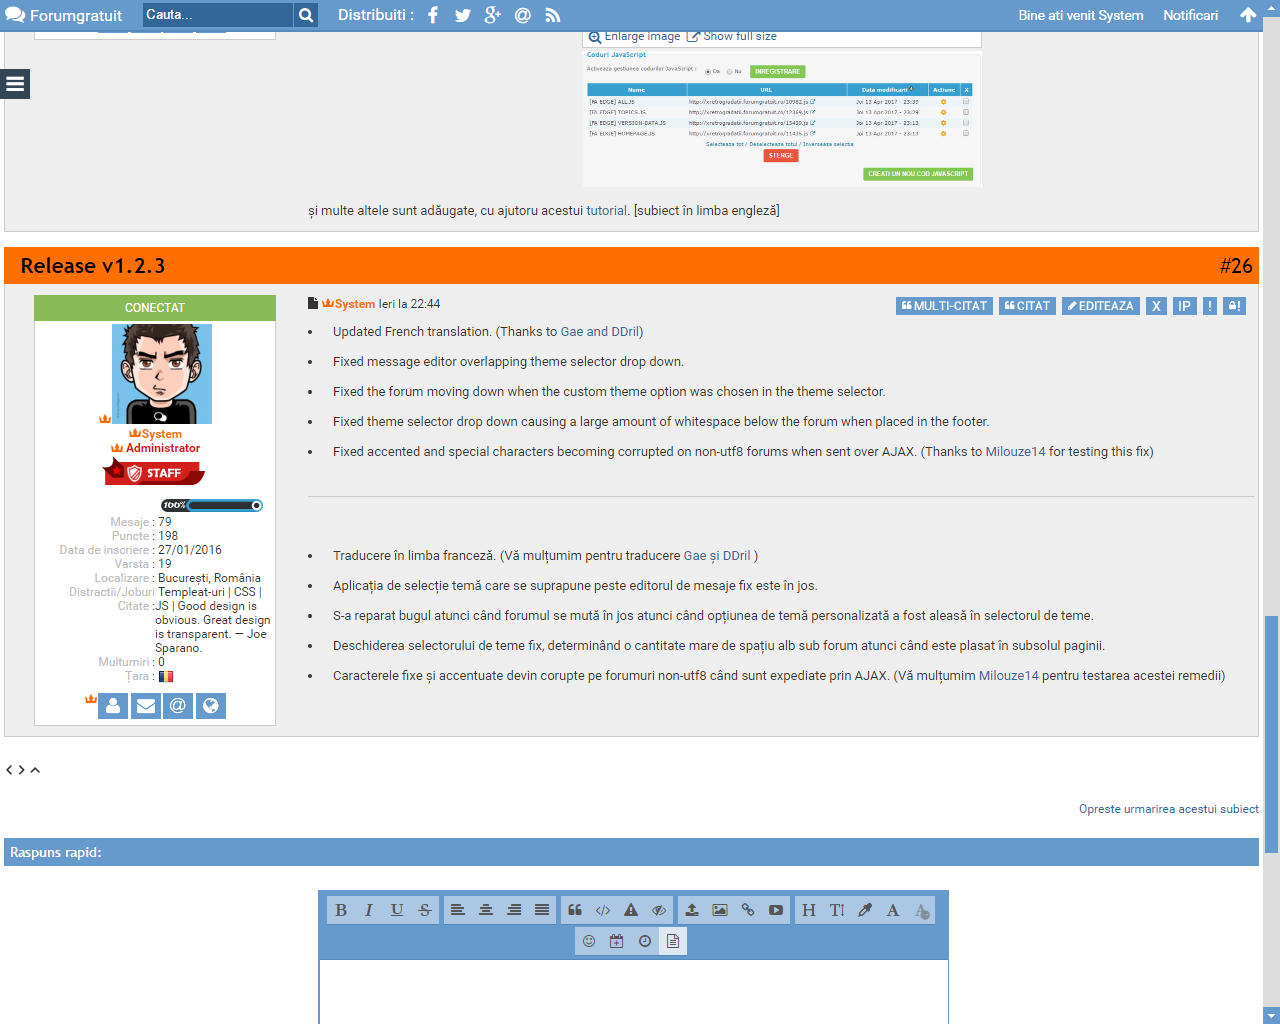 fa_share - Forumactif Edge - A Free Modern and Responsive Forum Theme - Page 4 289g1o2